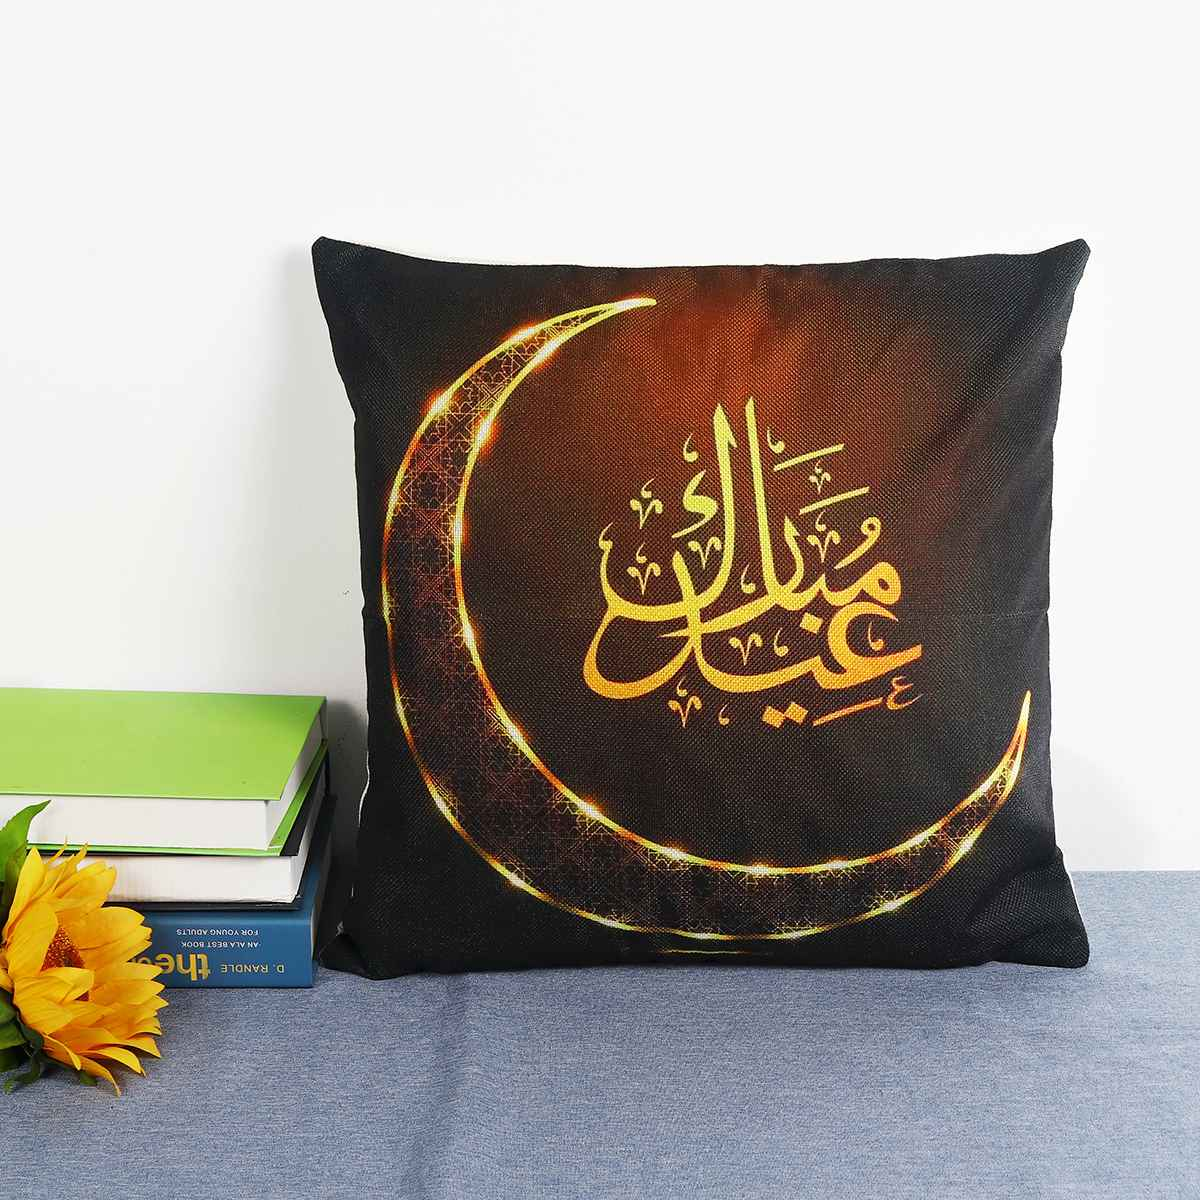 Ramadan Cushion Cover Islam Muslim Masjid Mosque Cushion Covers Eid Ramadan Kareem Moon Art Cushion Cover Decorative Pillow Case